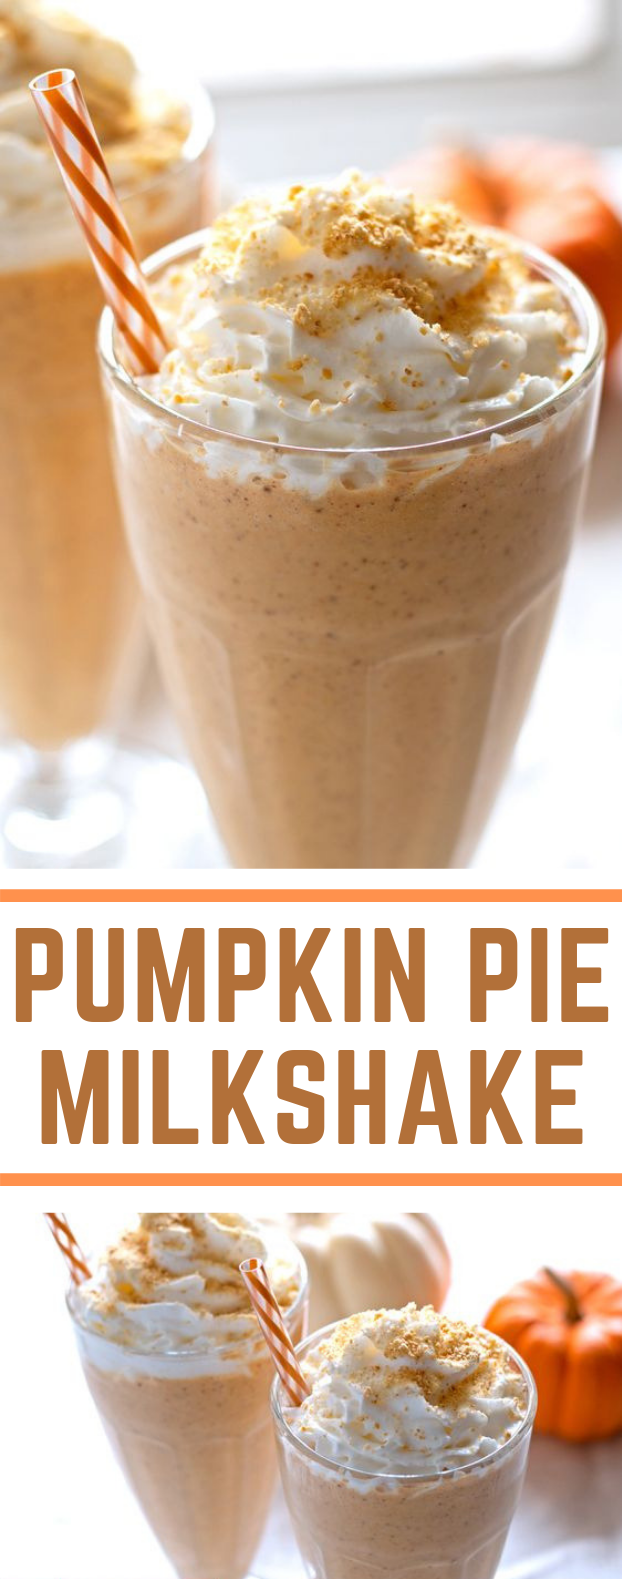 Pumpkin Pie Milkshake #Summer #Drinks